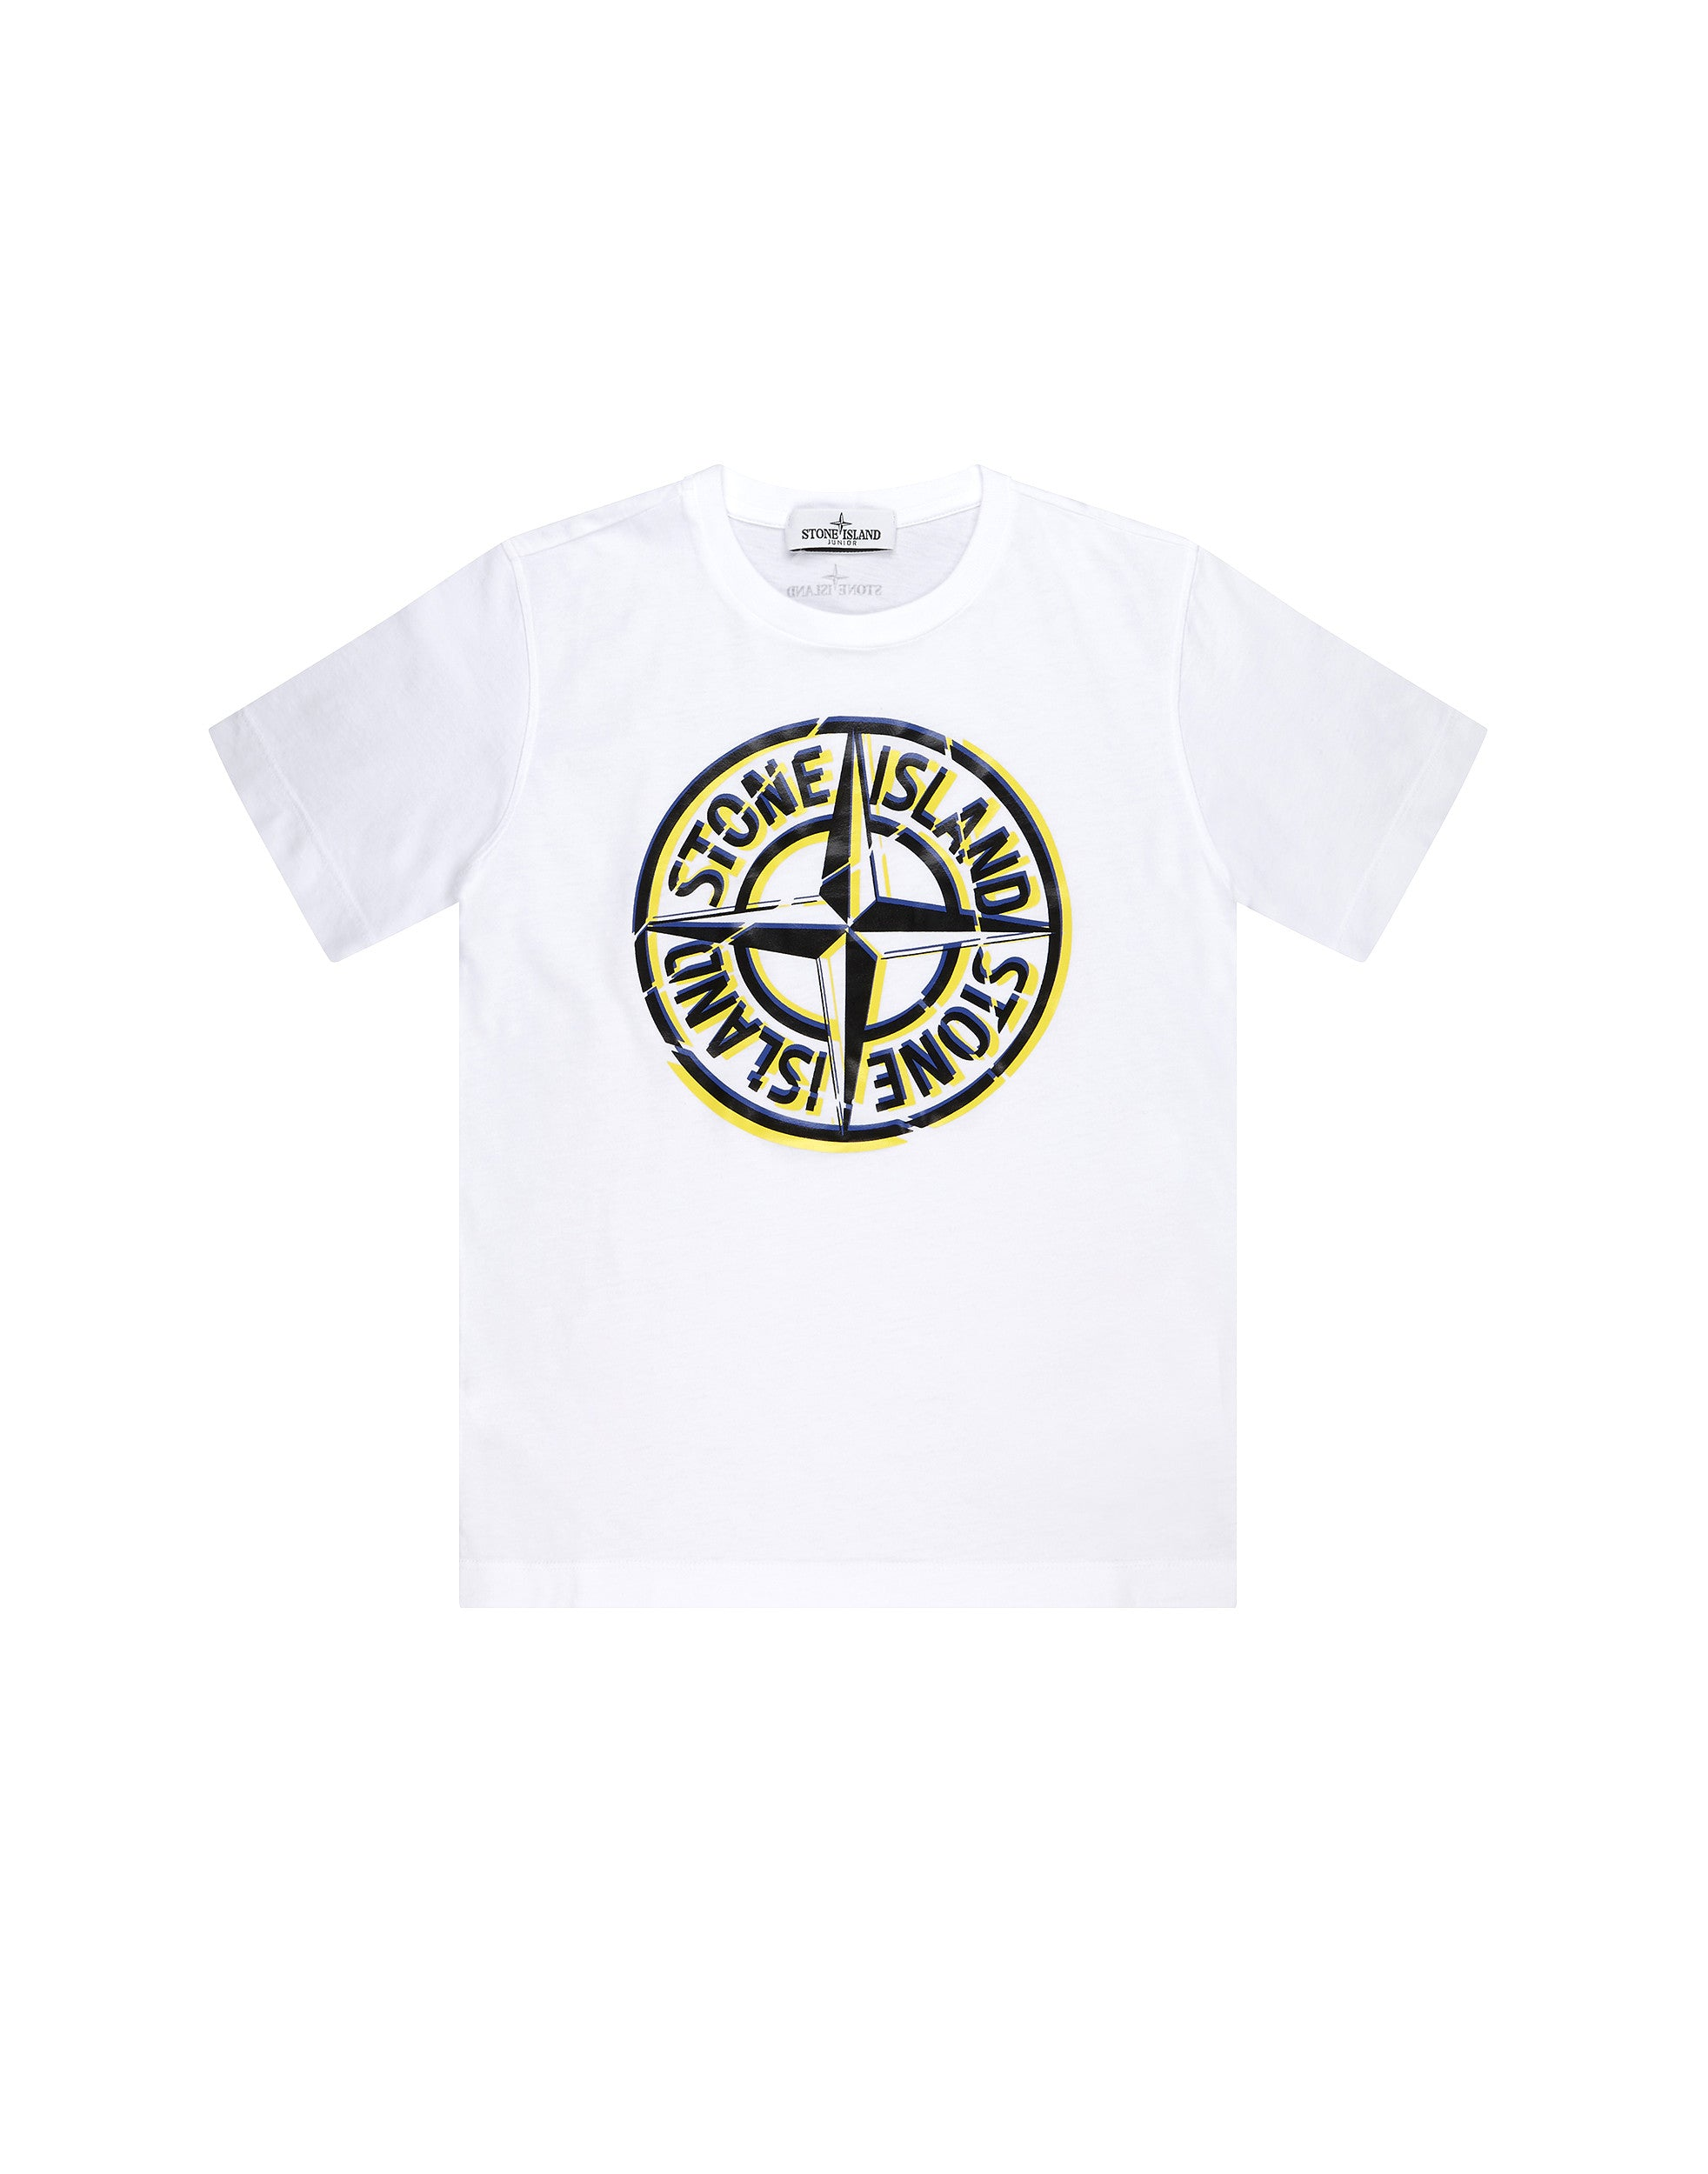 21051 Printed T-Shirt in White